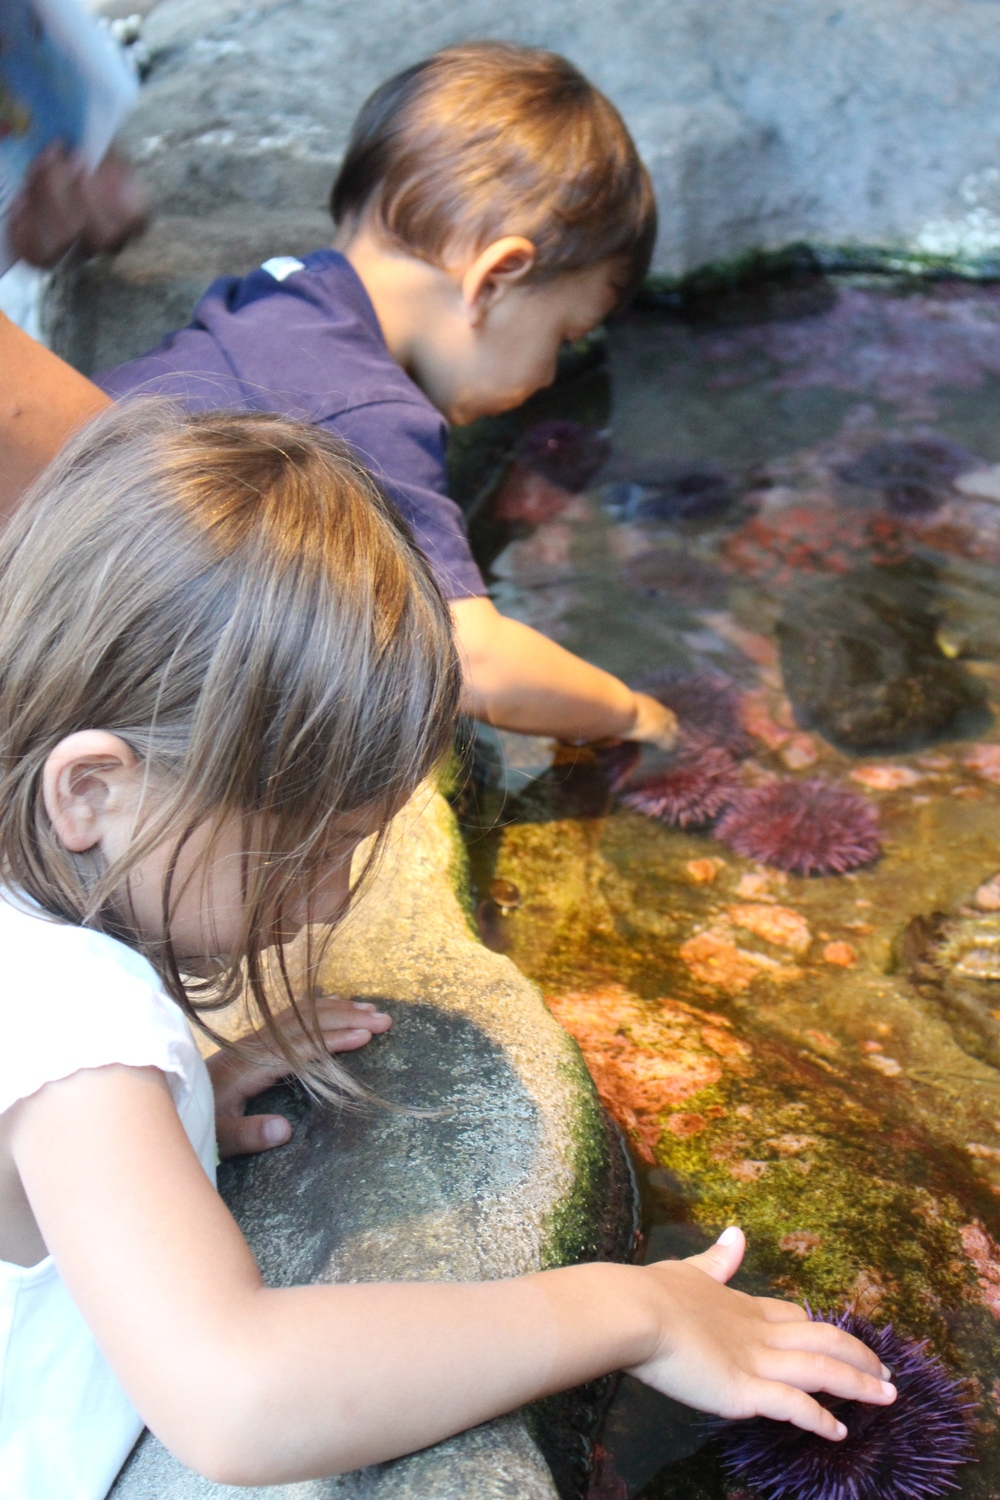 My children touching sea anemones at Hatfield Marine Science Visitor's Center tidepool exhibit